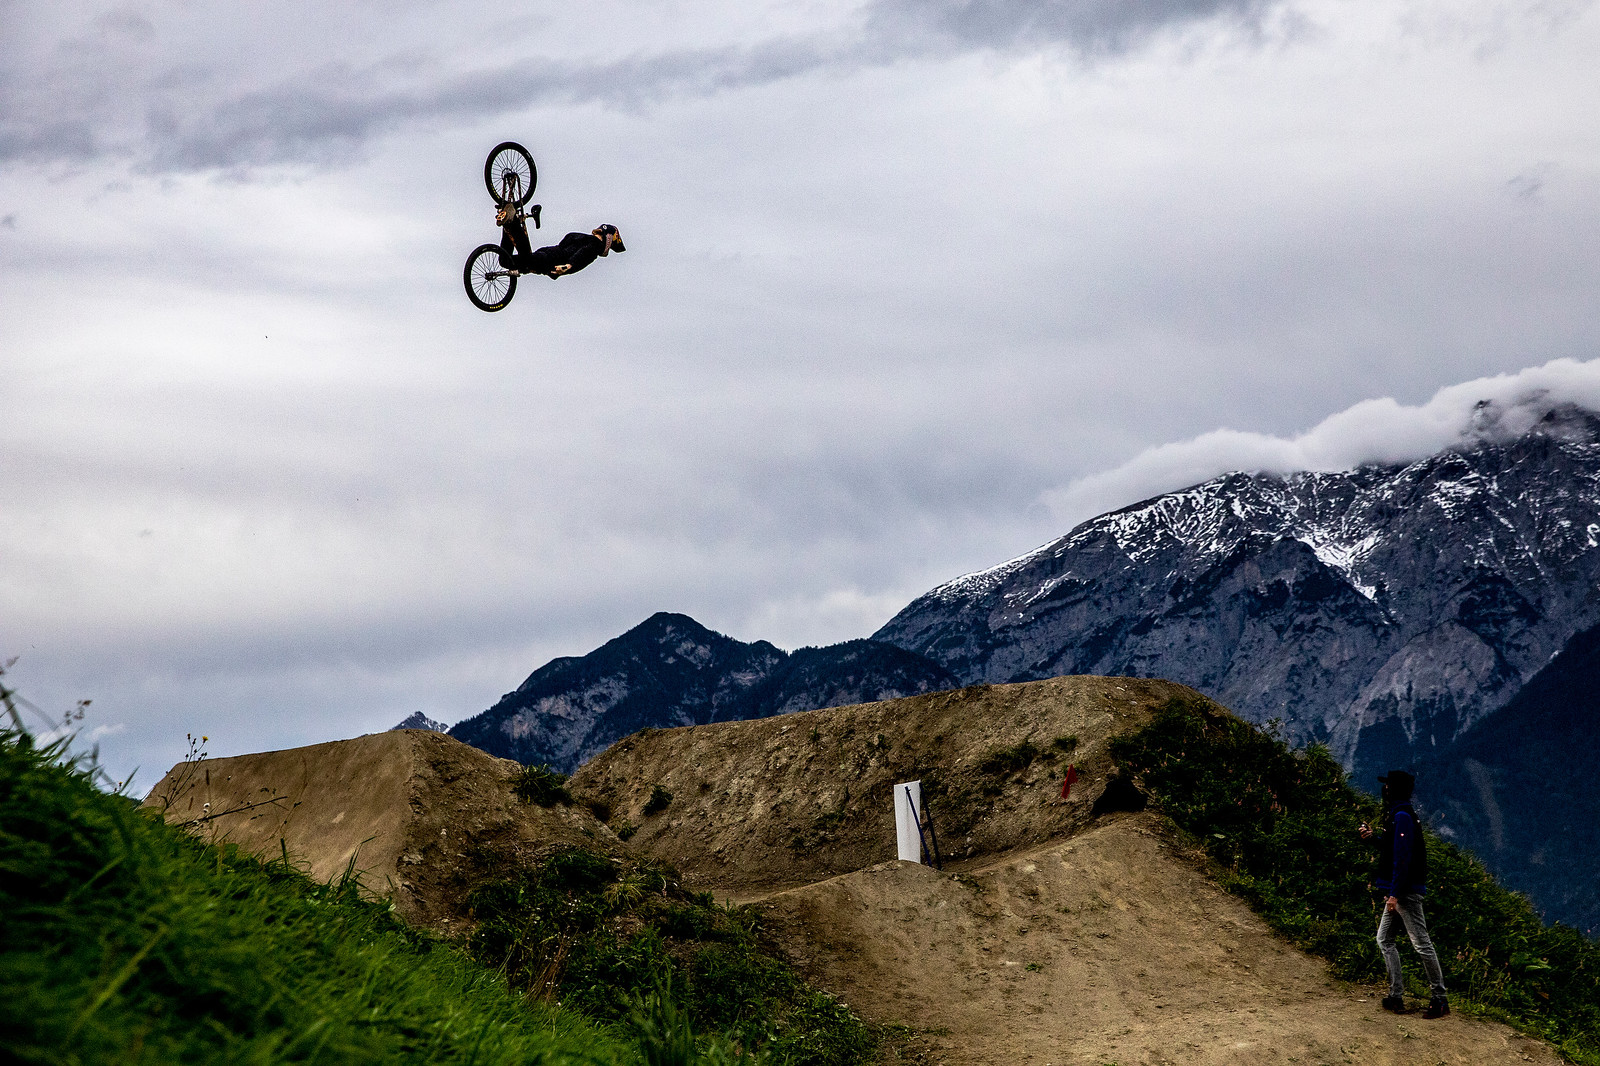 Don't you wish your goon-airs looked like this. Front flip fun from the ever-stylish Swede, Emil Johansson.